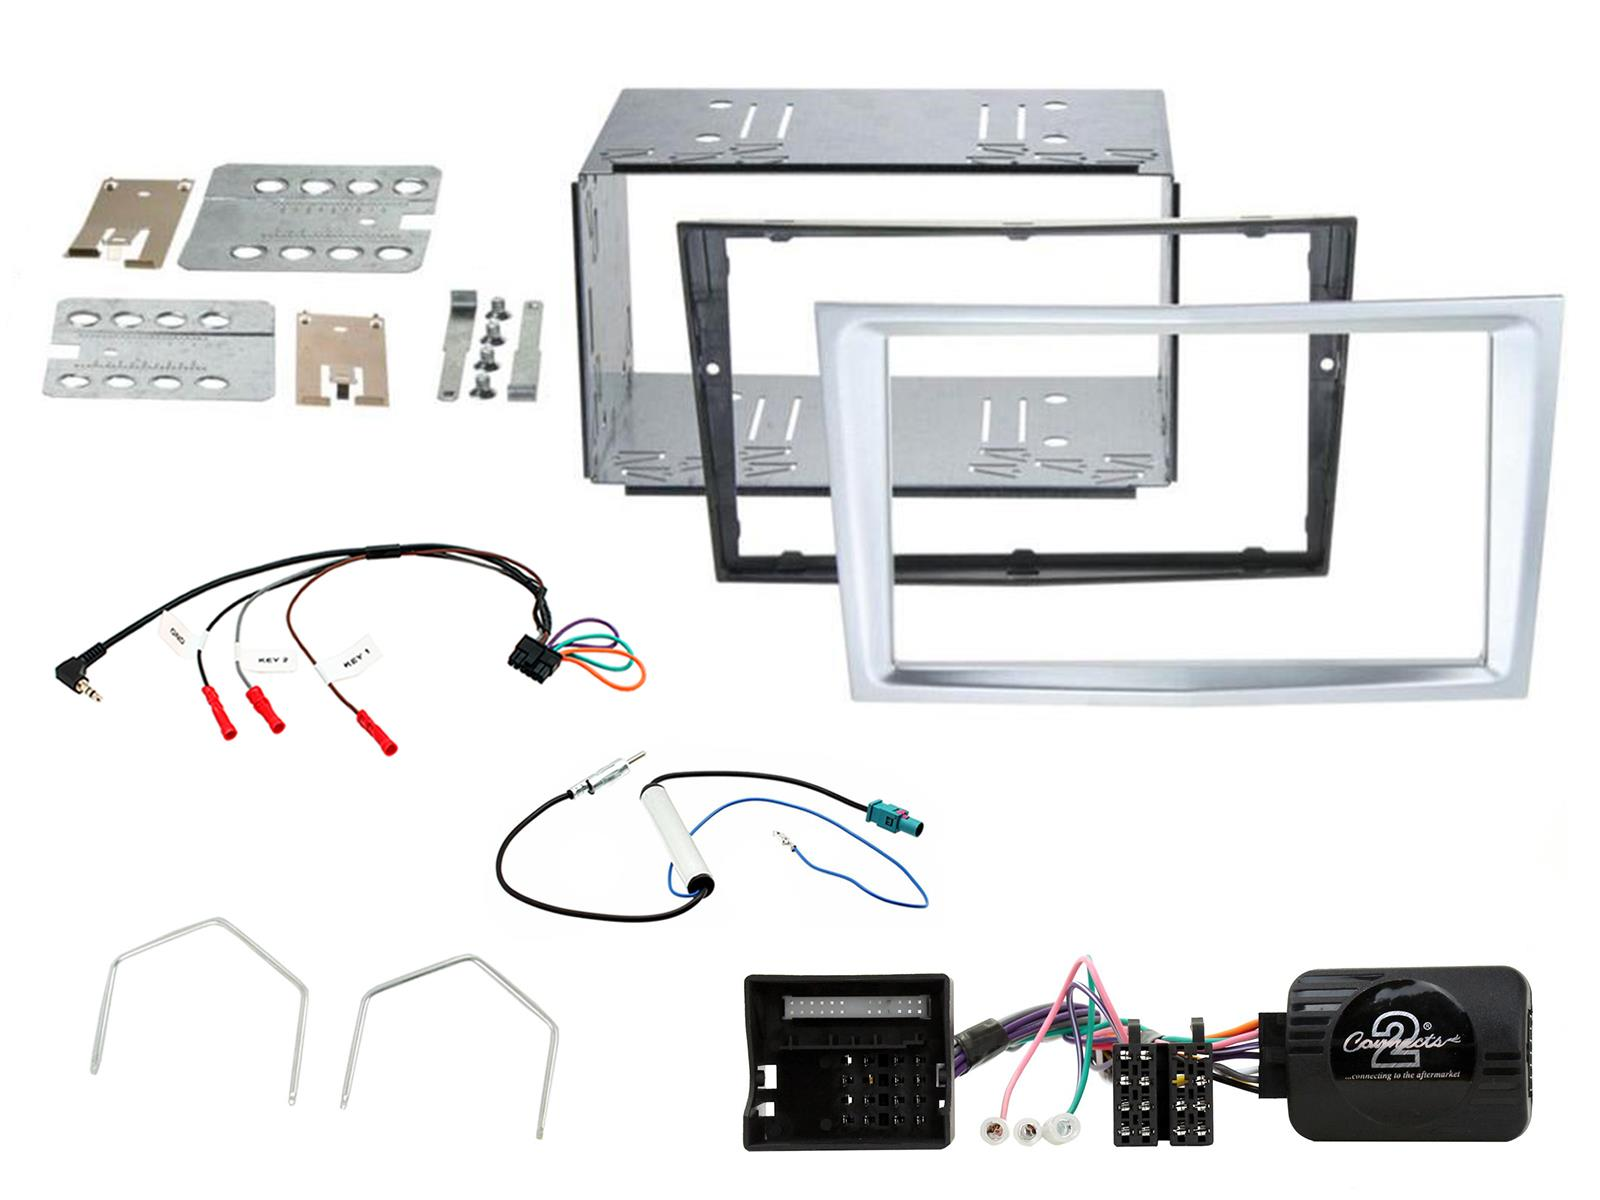 CONNECTS2 CORSA D 06 Double Din Stereo Facia Fitting Kit CHROME